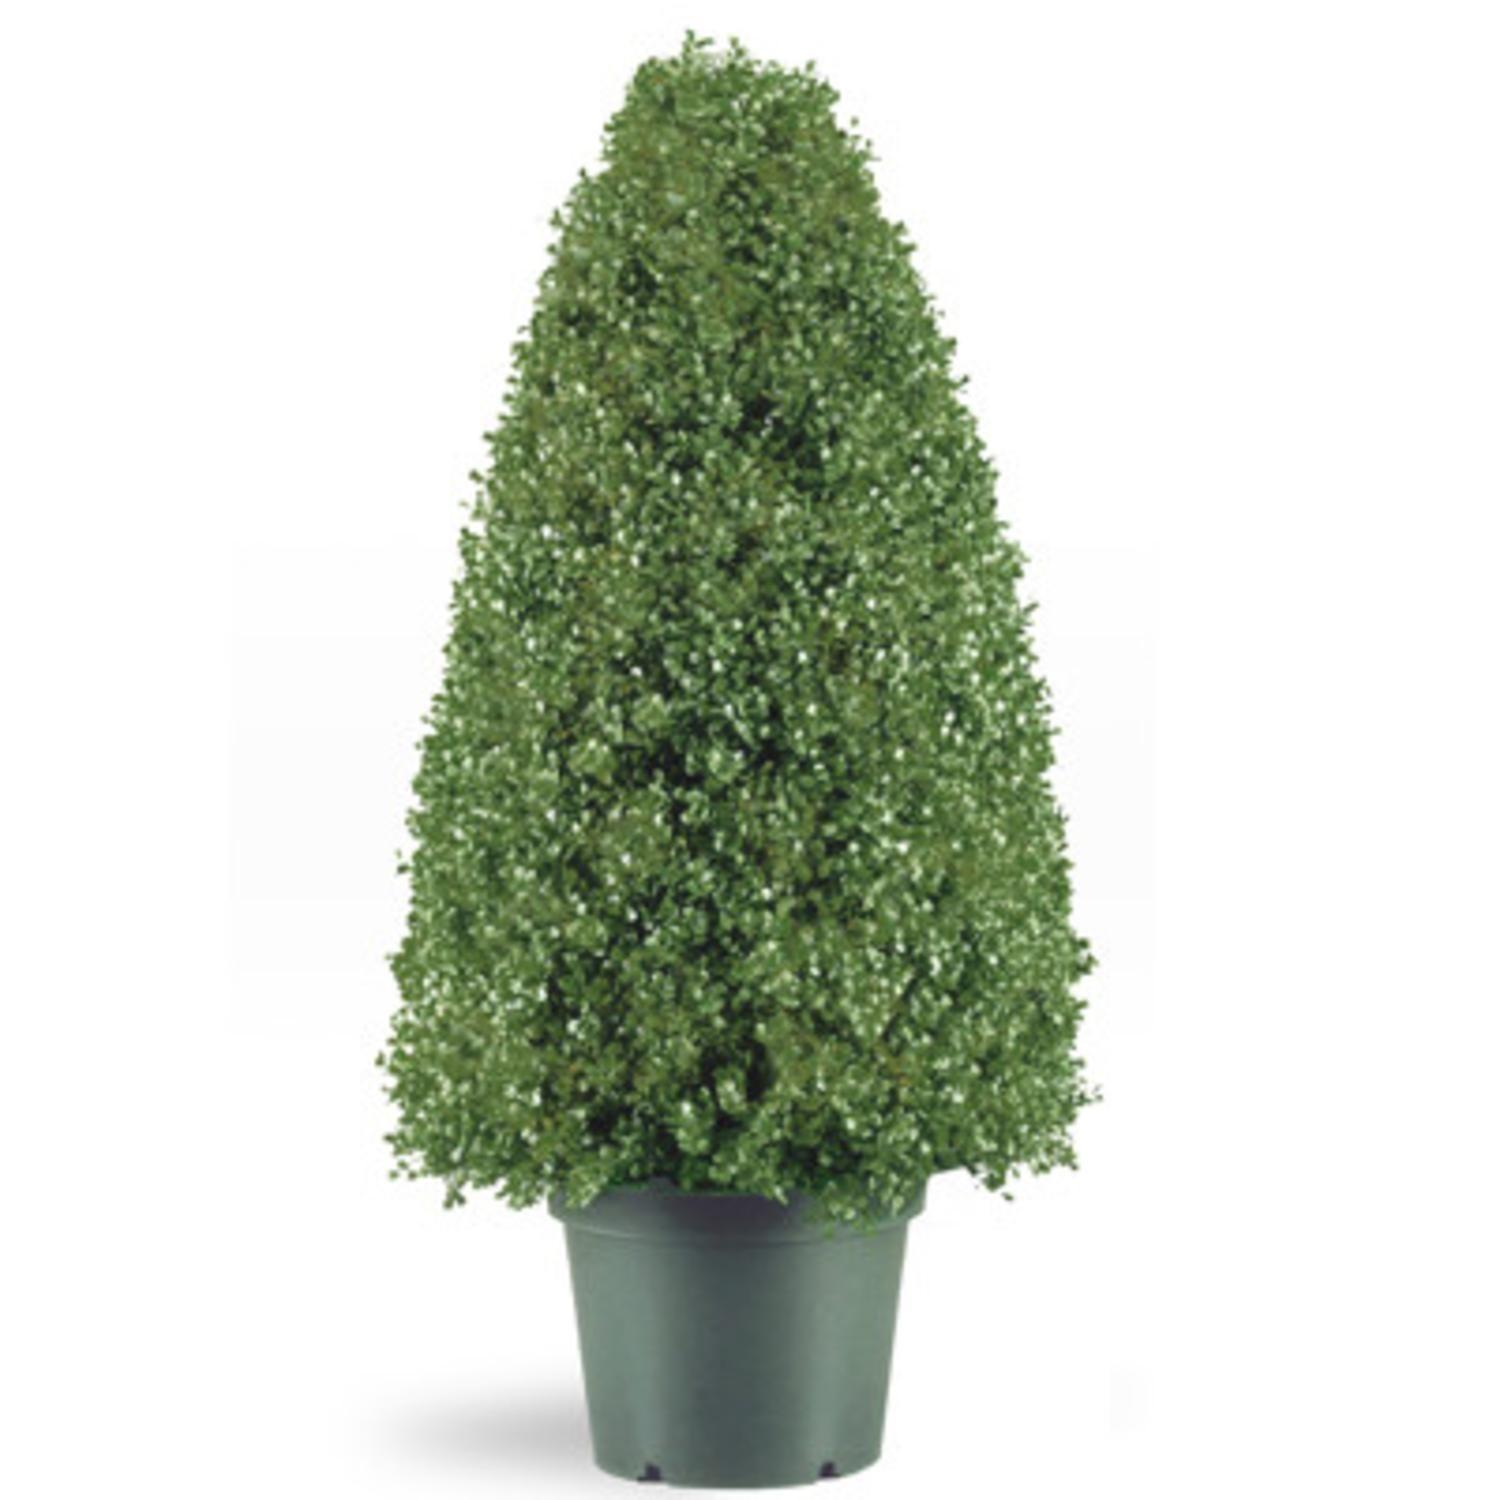 Potted Artificial Boxwood Topiary Cone Tree Jet